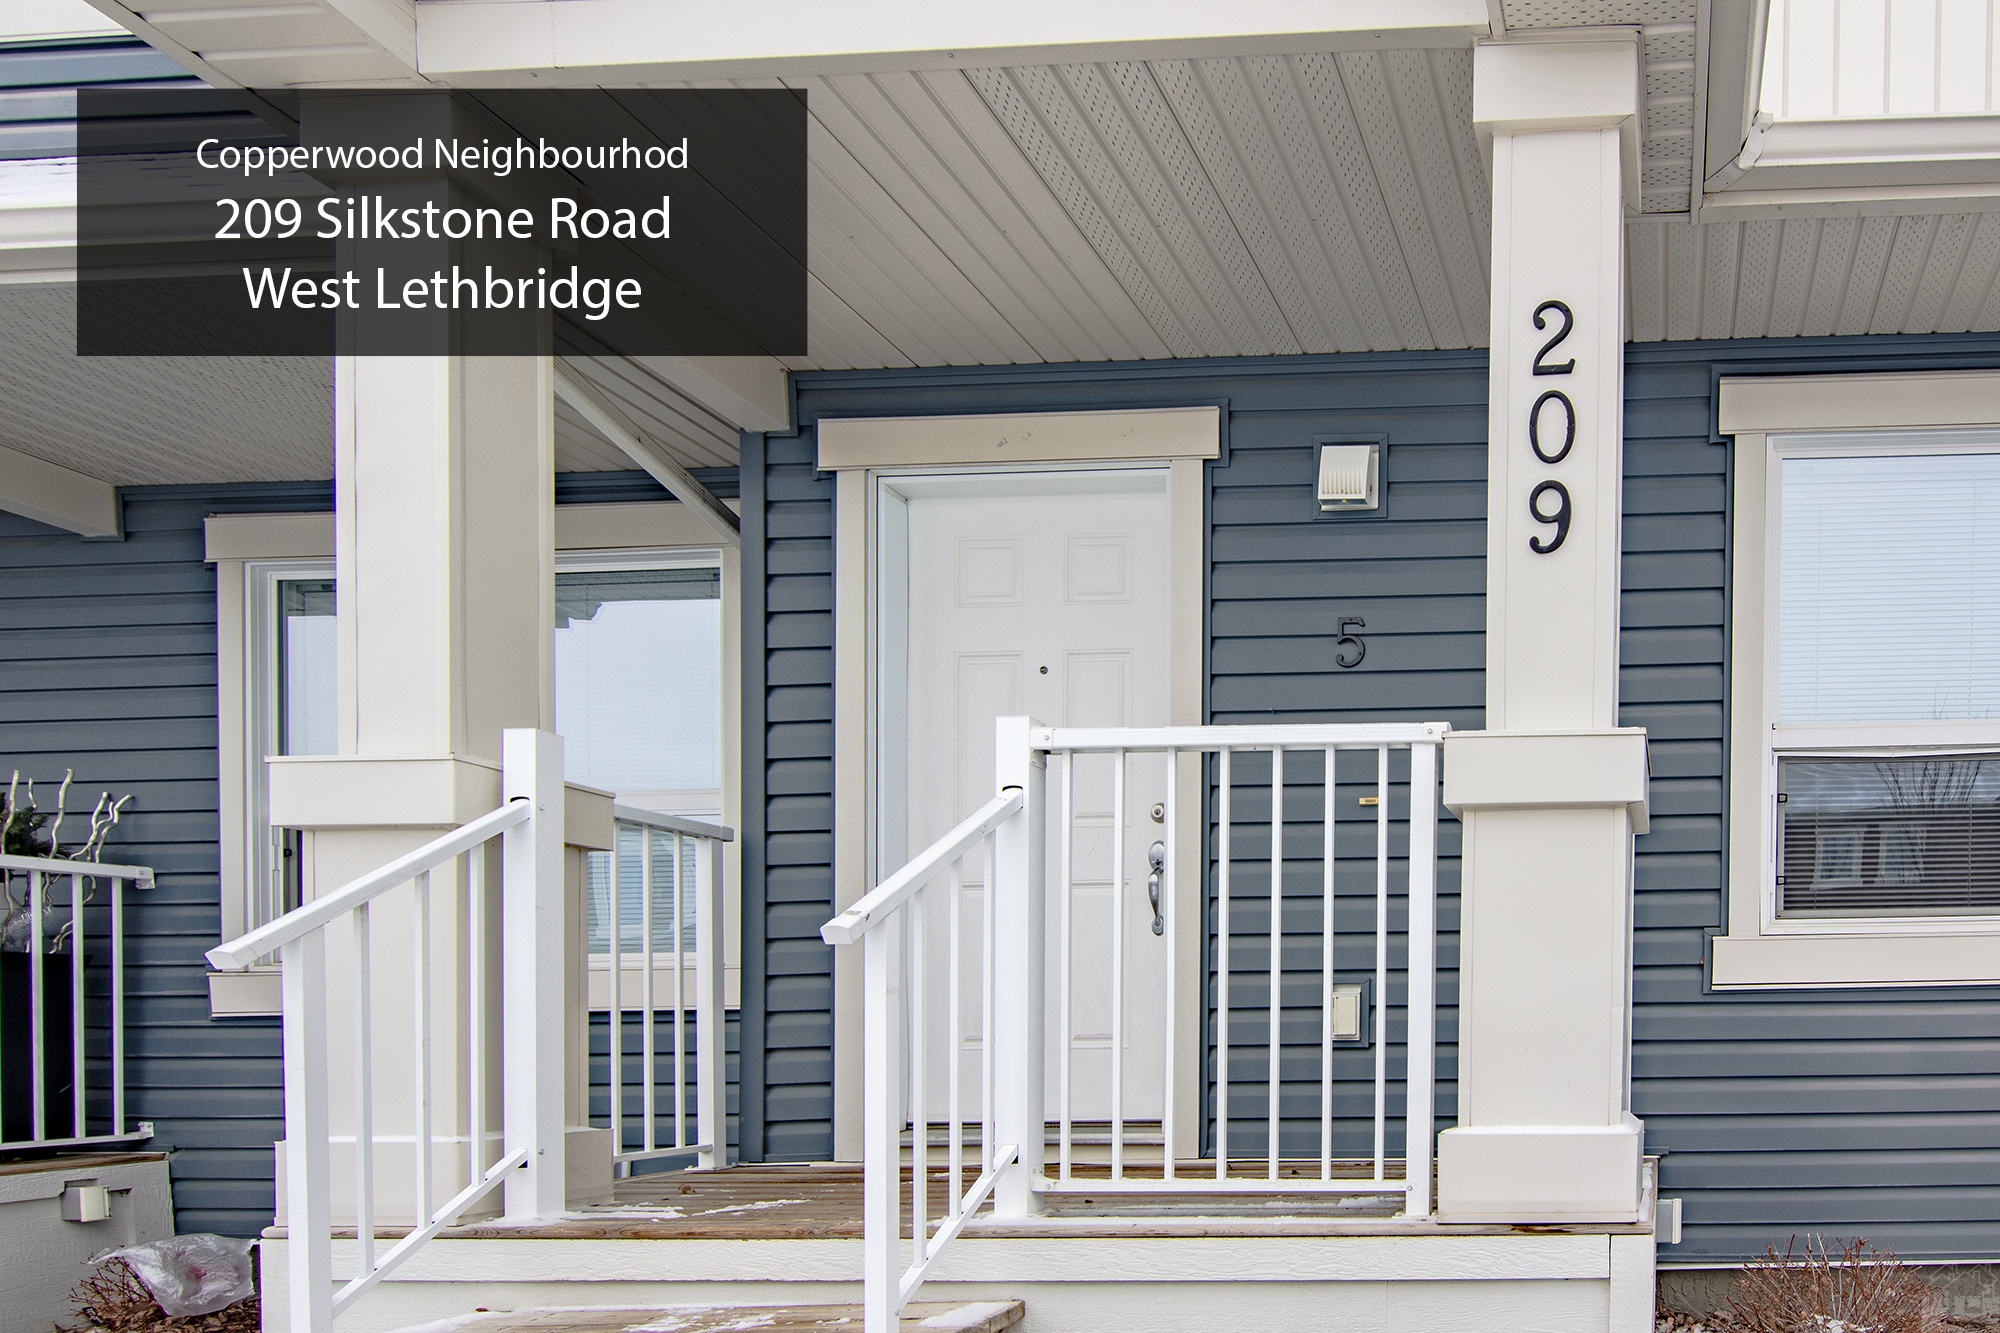 209 Silkstone Road West Lethbridge (Unit 5) Key Image